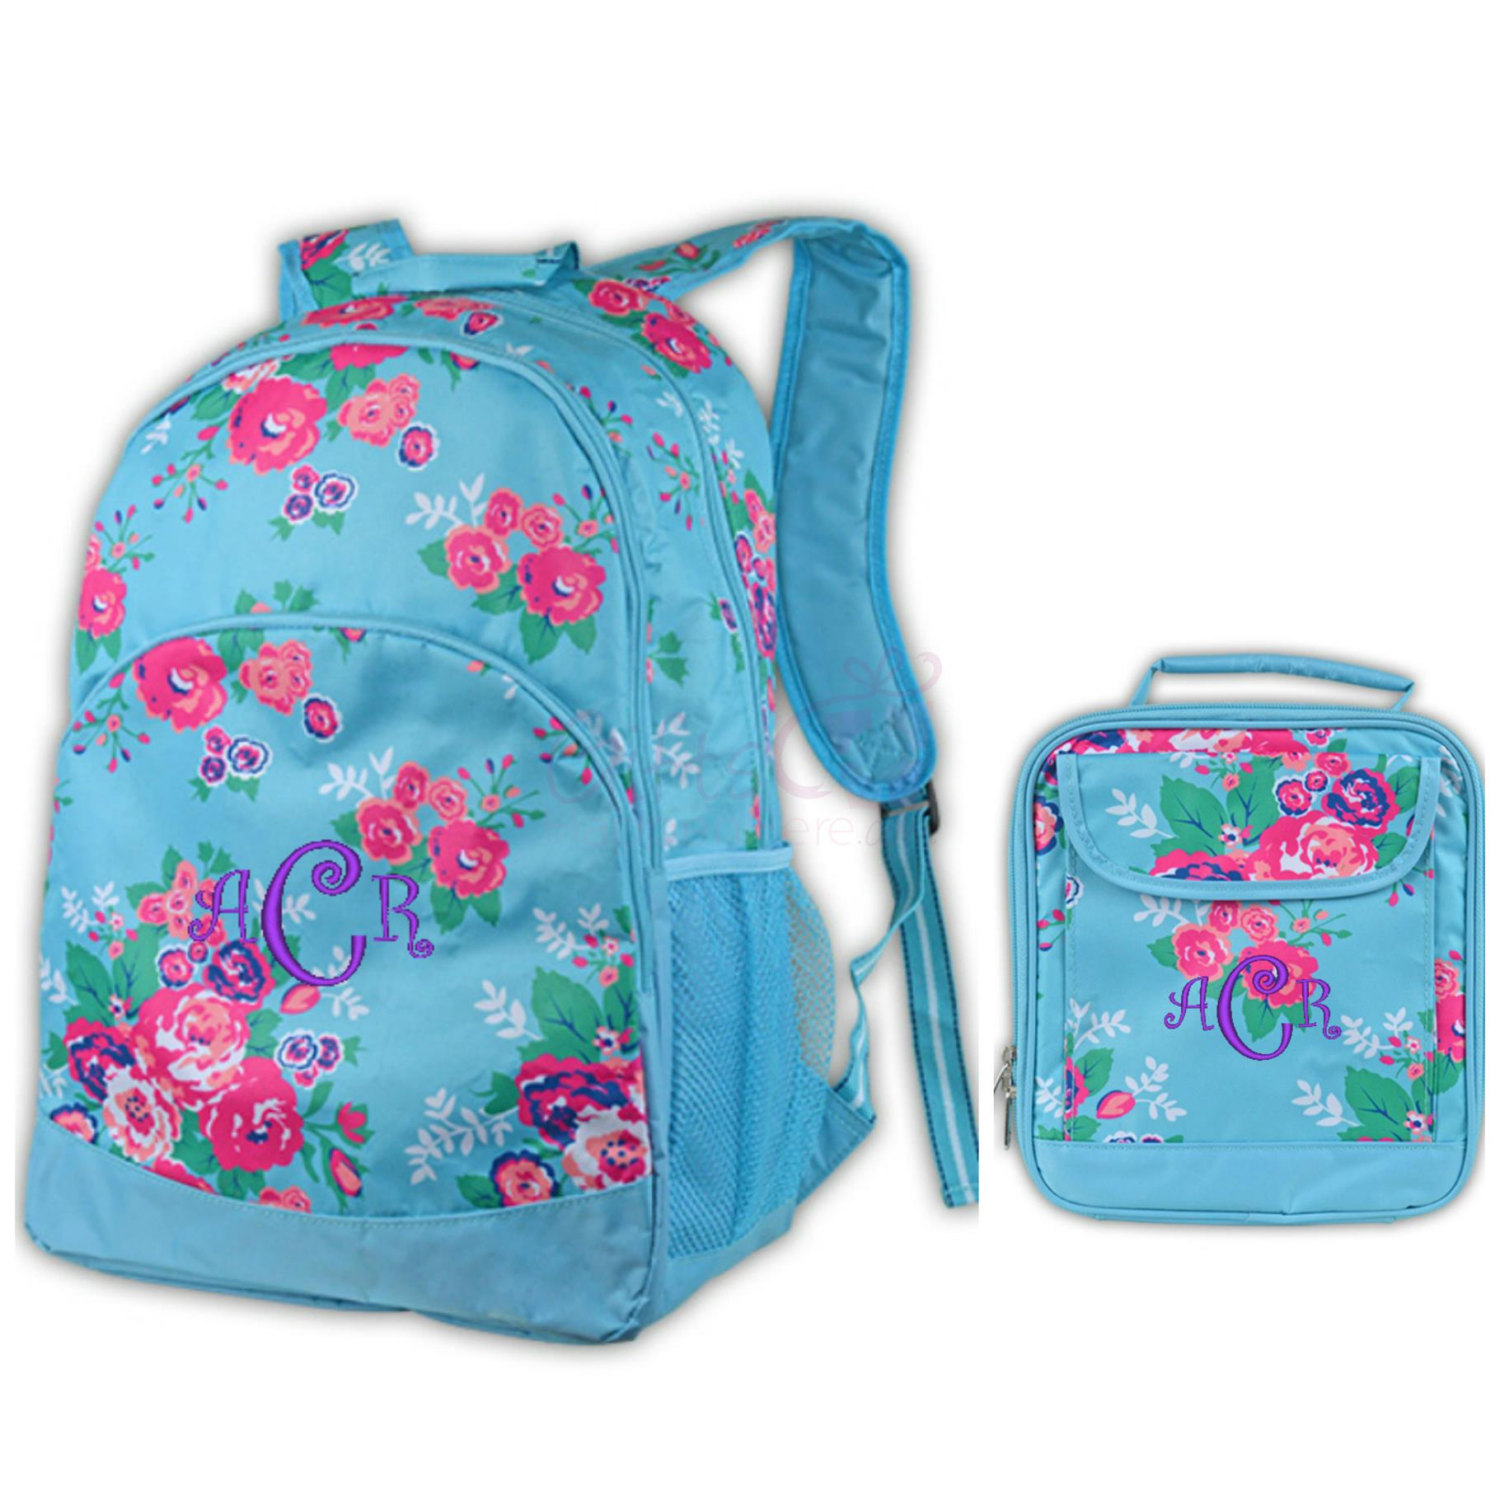 Personalized Backpacks For Kids mtR98iPK